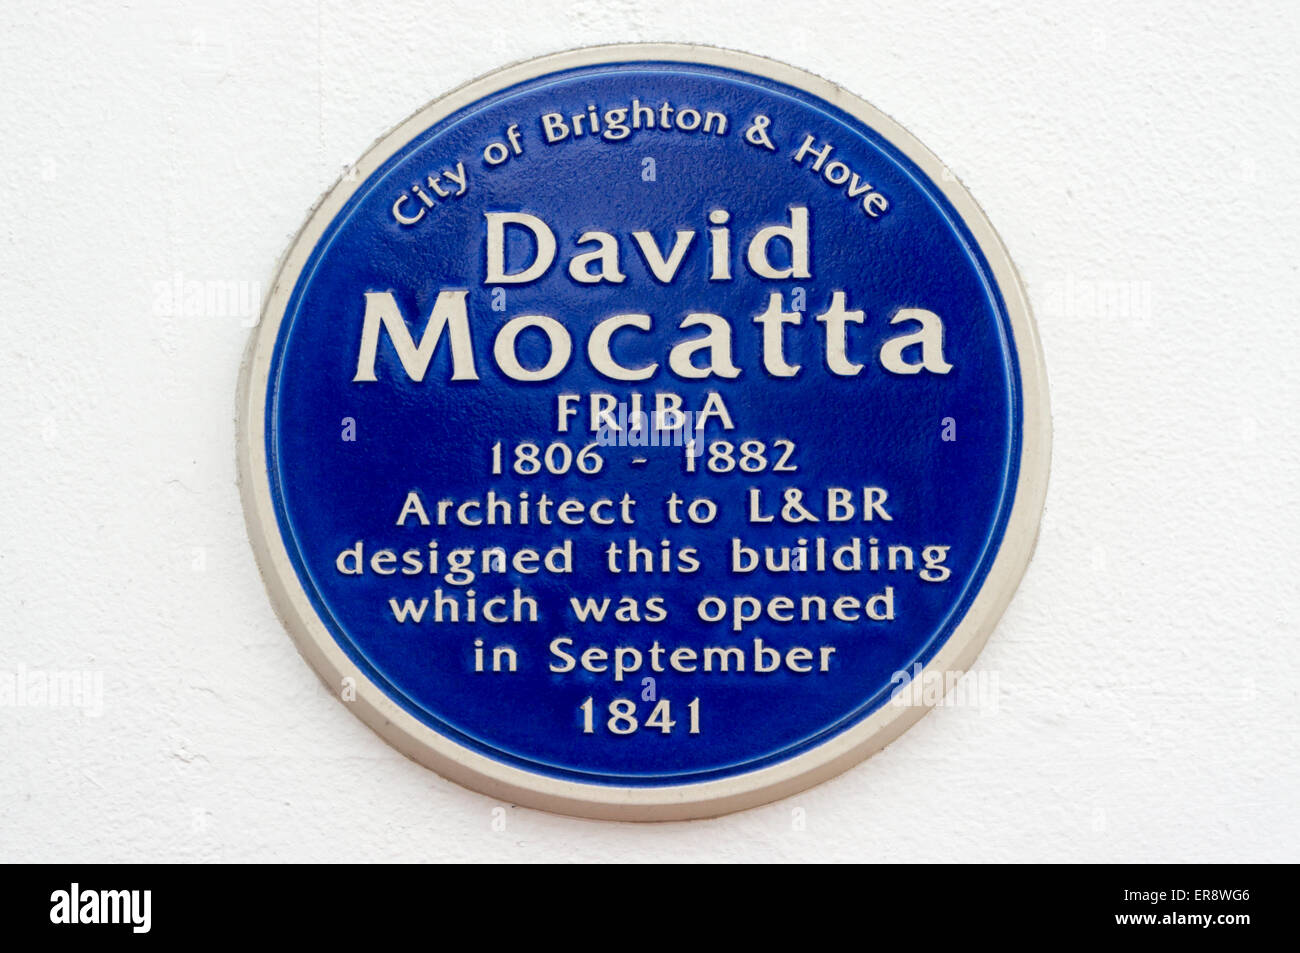 Blue plaque at Brighton station commemorates David Mocatta FRIBA, the Victorian architect who designed the building. - Stock Image